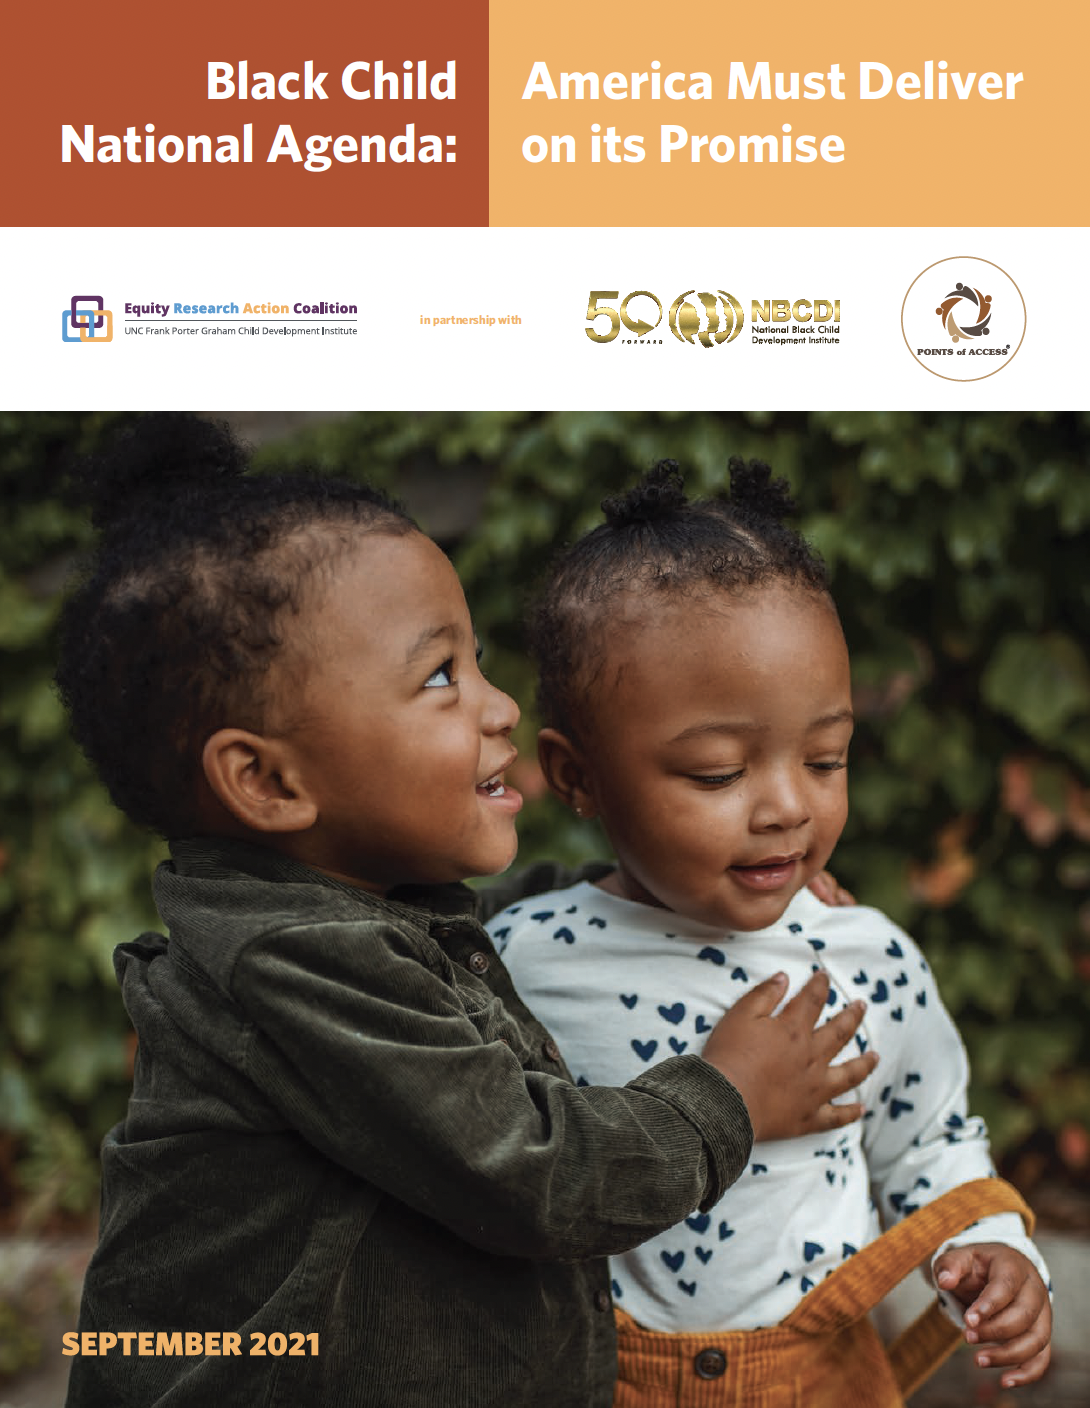 Black Child National Agenda: America Must Deliver on its Promise